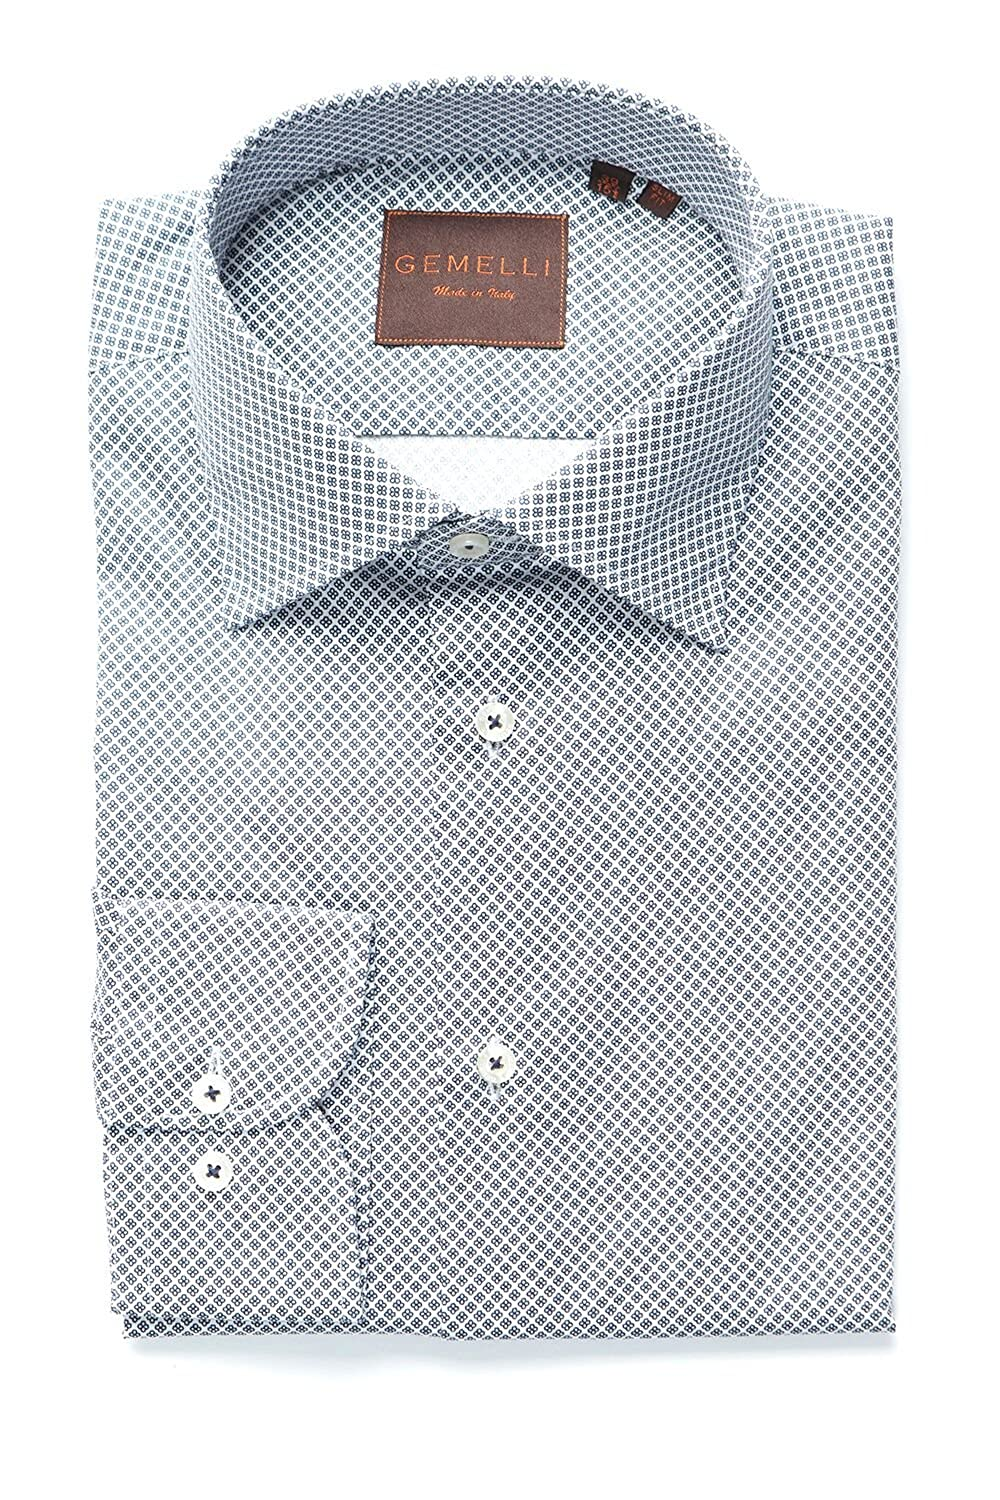 c45546e221f9 Mens Dress Shirt Slim Fit Made in Italy. 100% Cotton. Long Sleeve Navy and  White Mini Floral Geometric Shirt at Amazon Men s Clothing store